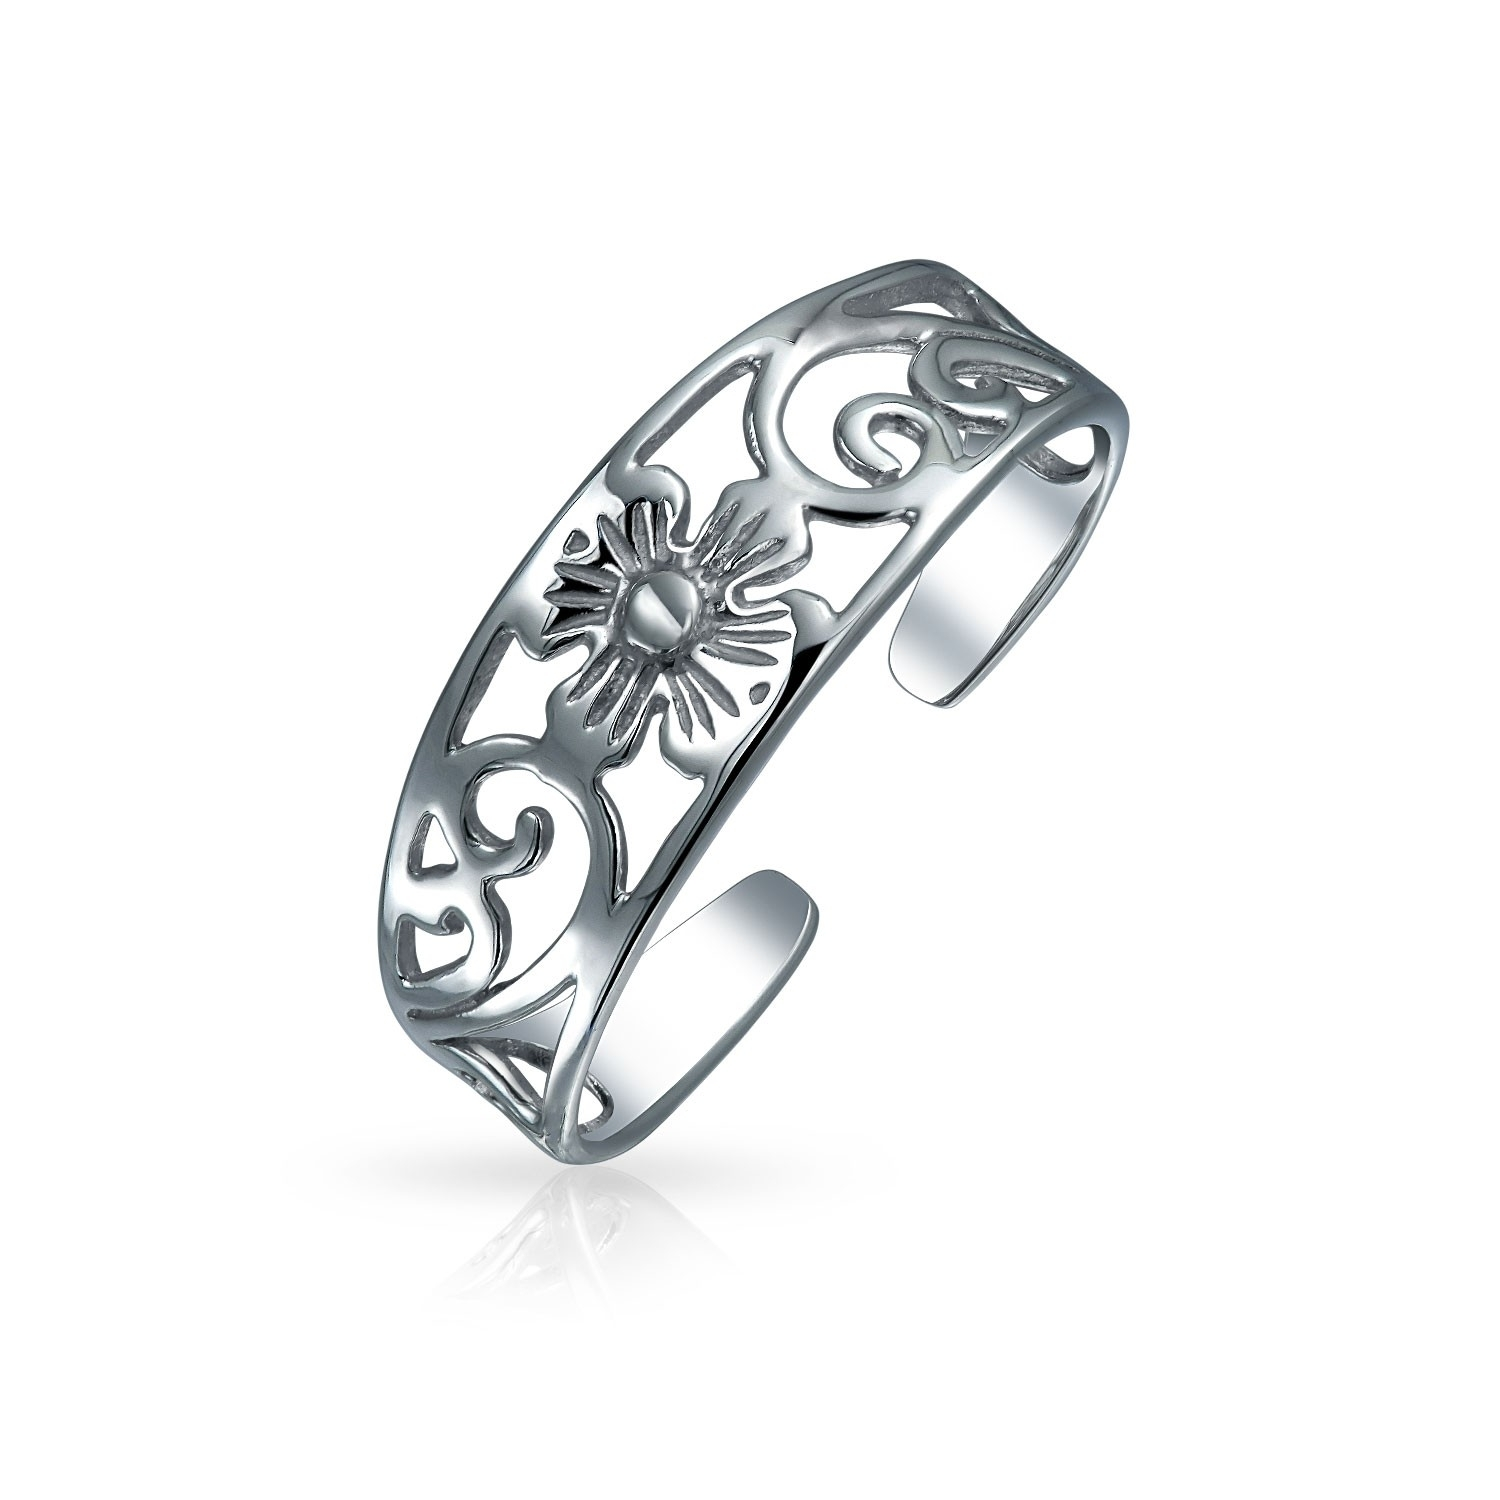 Adjustable Filigree Flower Toe Ring 925 Sterling Silver Midi Rings In Latest Sterling Silver Toe Rings (View 6 of 15)